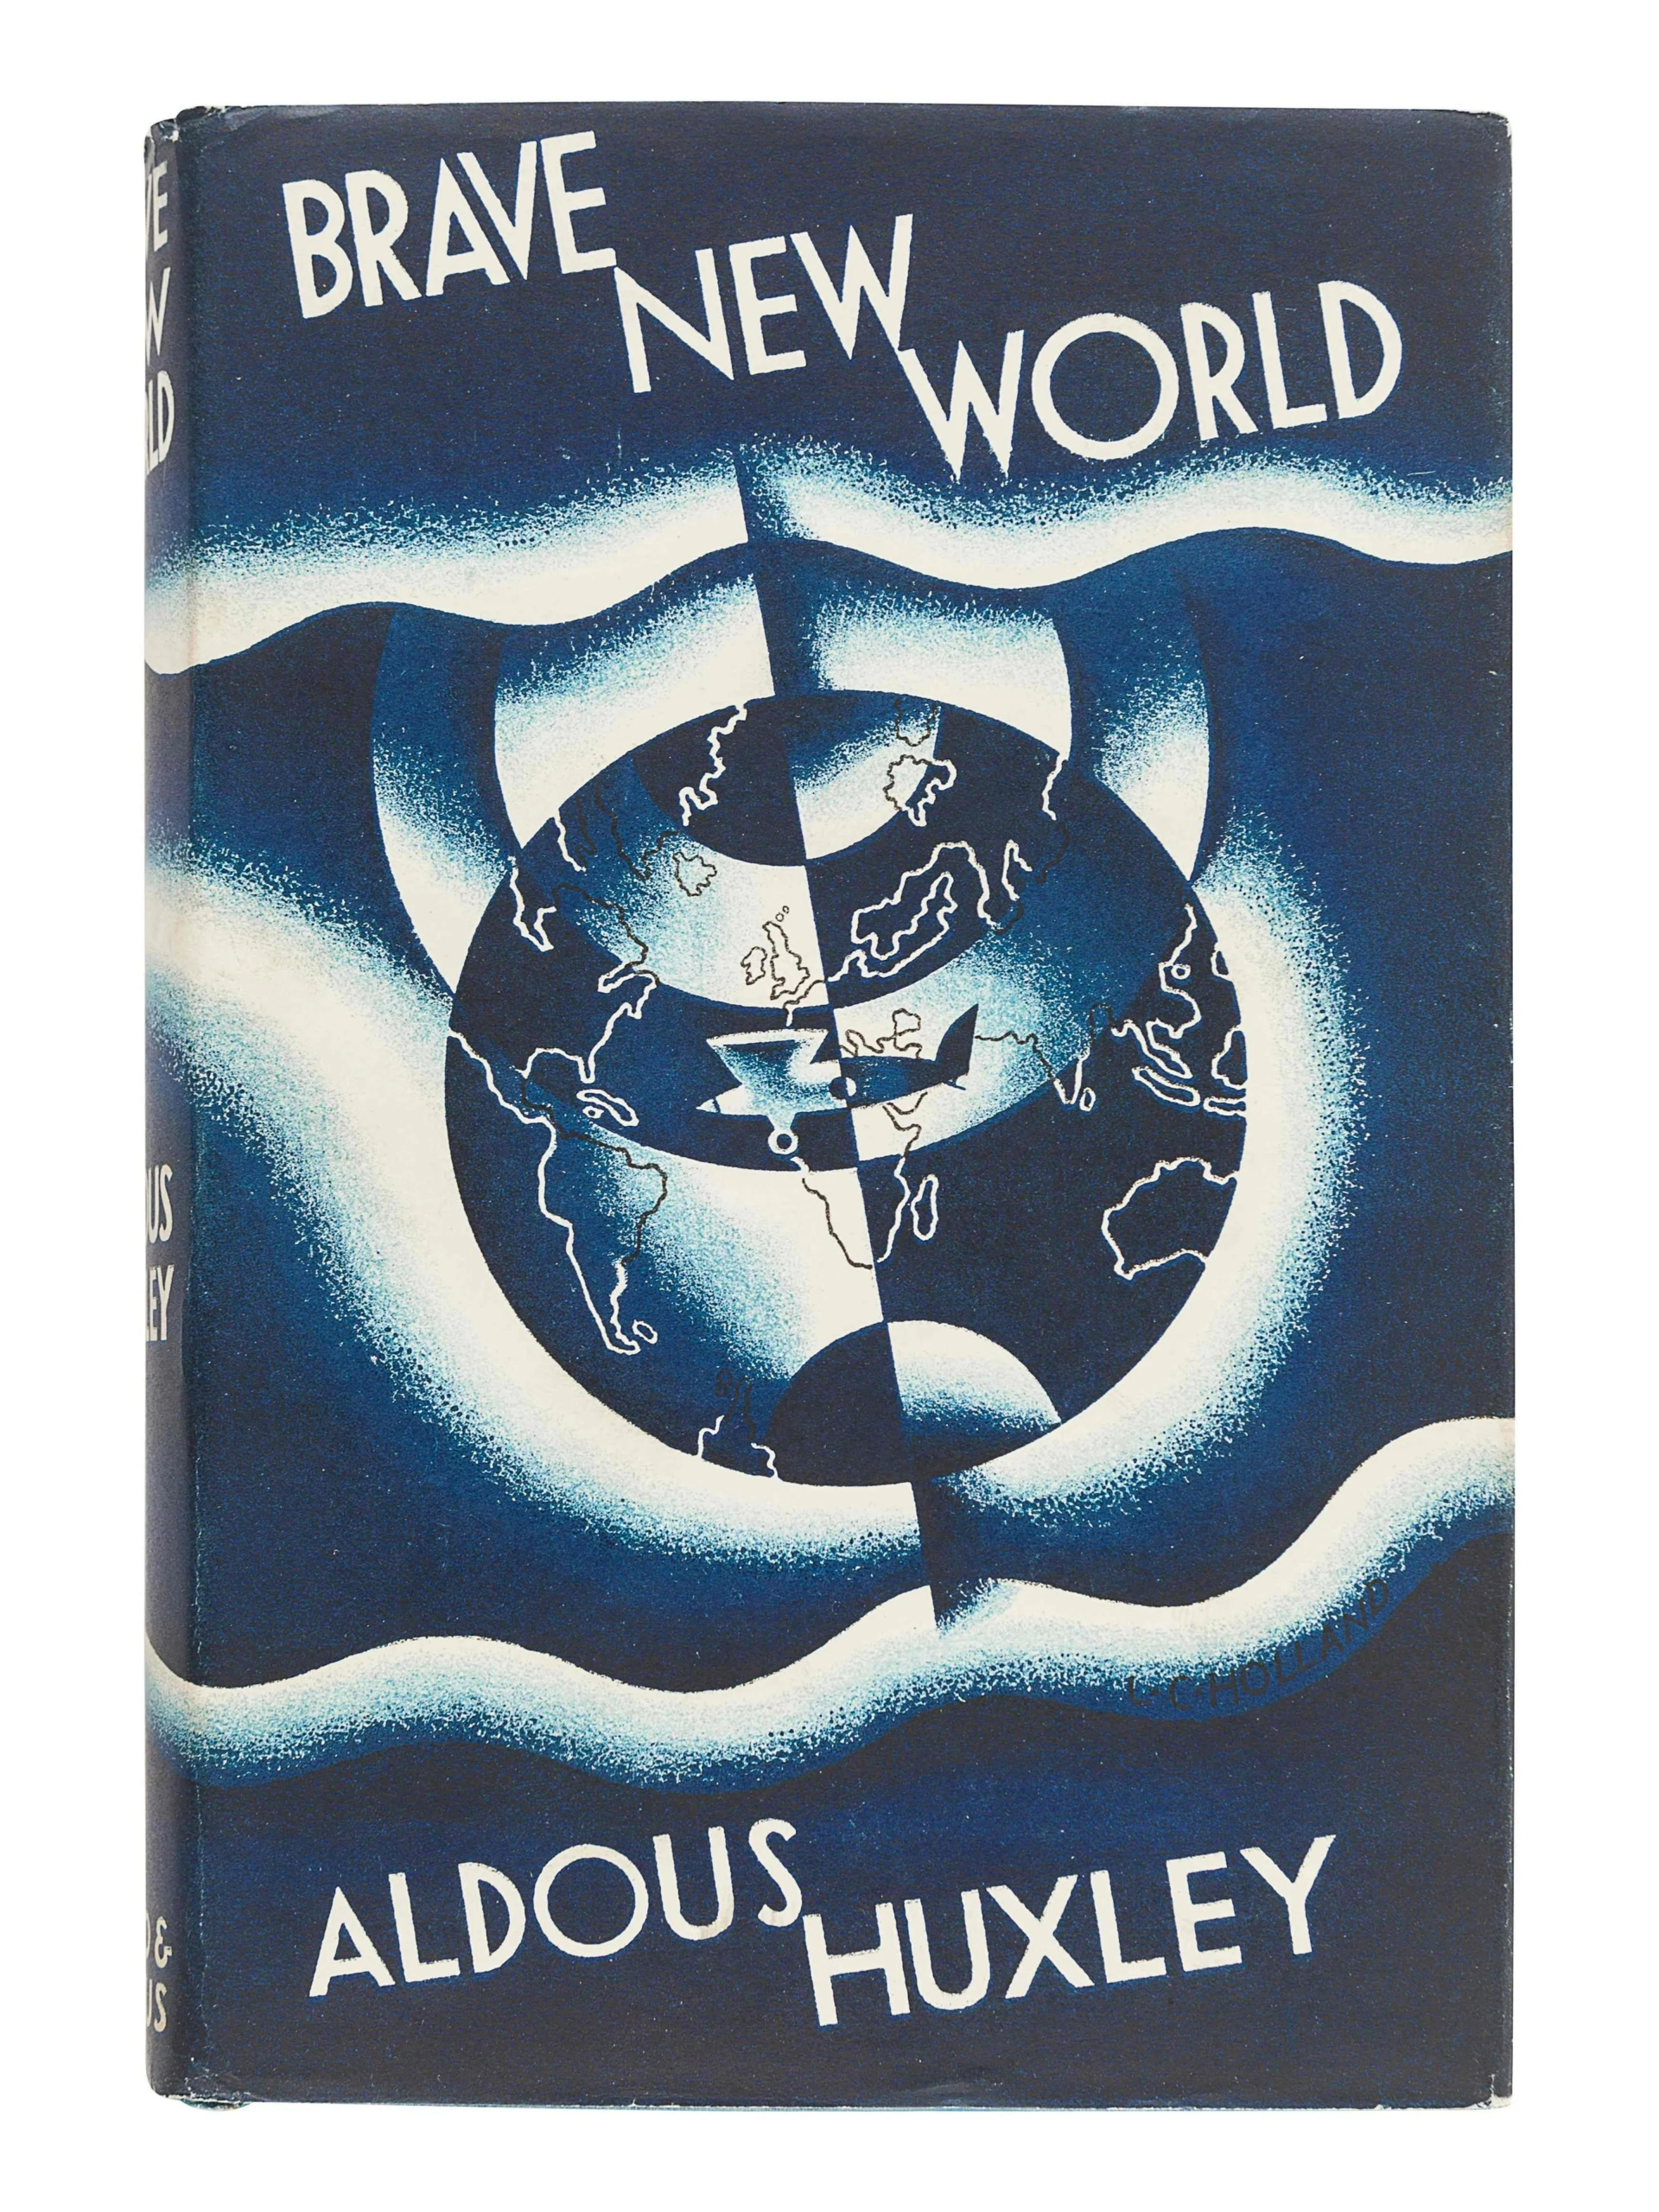 Aldous Huxley, 'Brave New World,' $10,625 including buyer's premium. Image courtesy Hindman